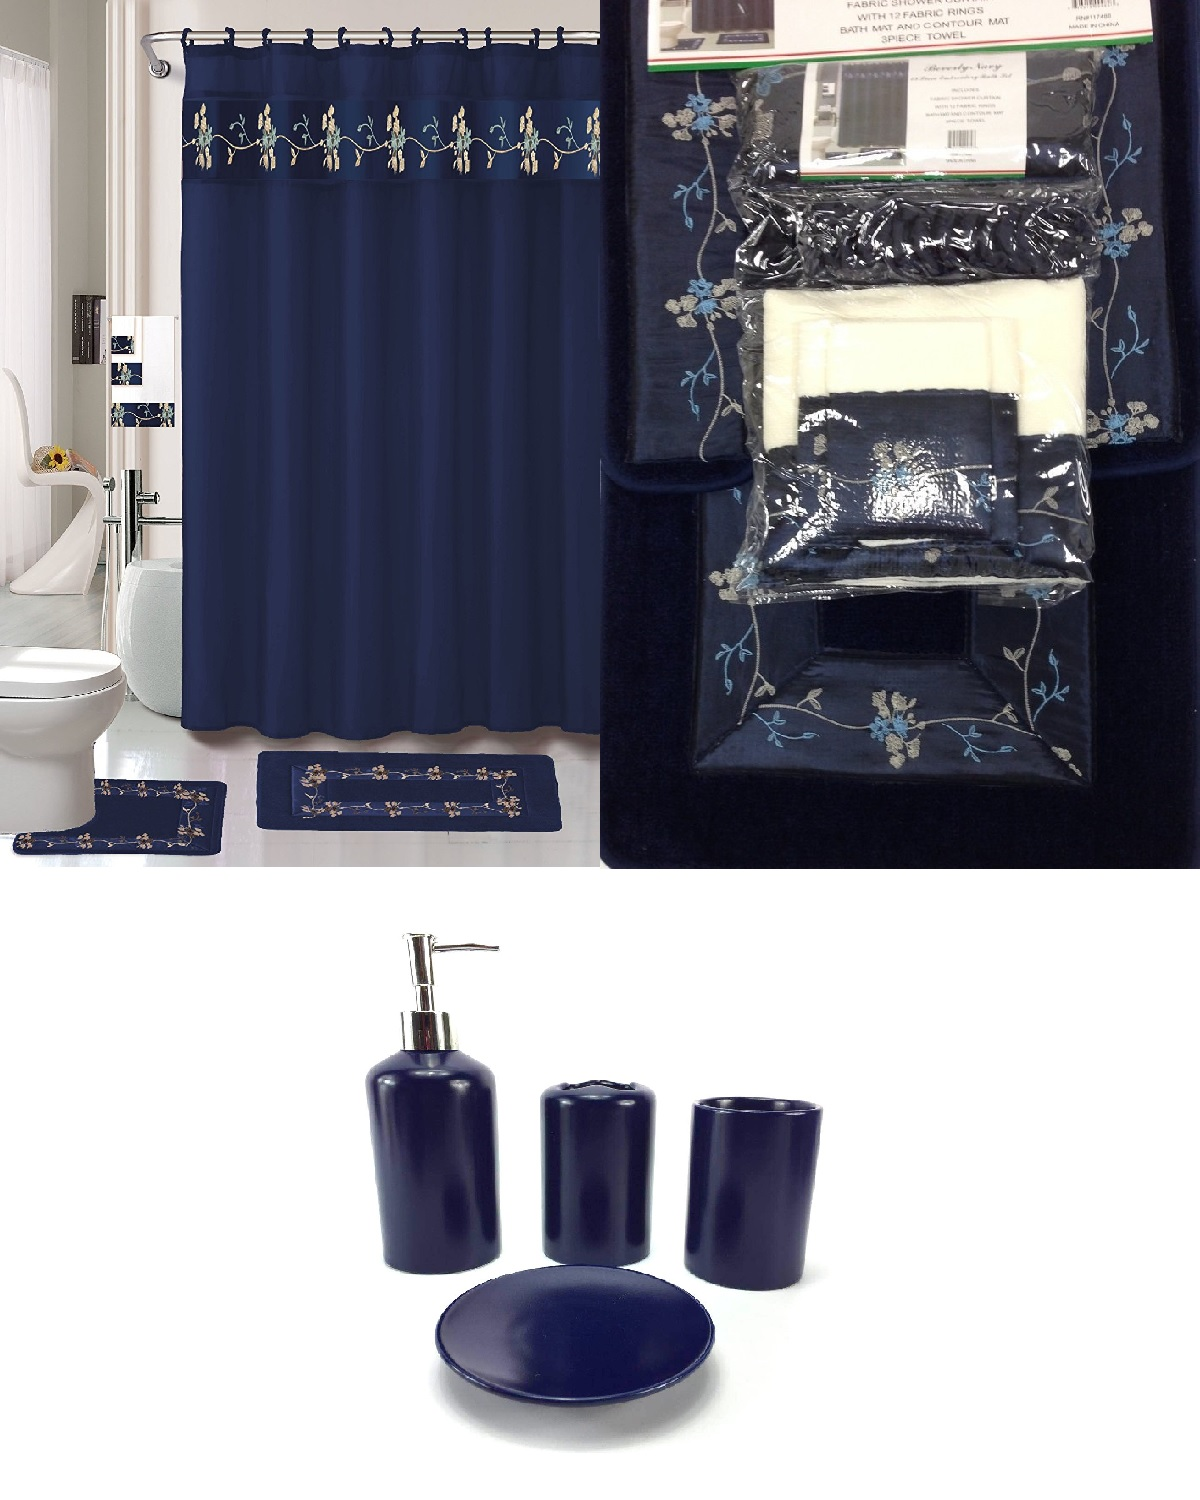 Click here to buy 22 Piece Bath Accessory Set Navy Blue Flower Bathroom Rug Set + Shower Curtain &....